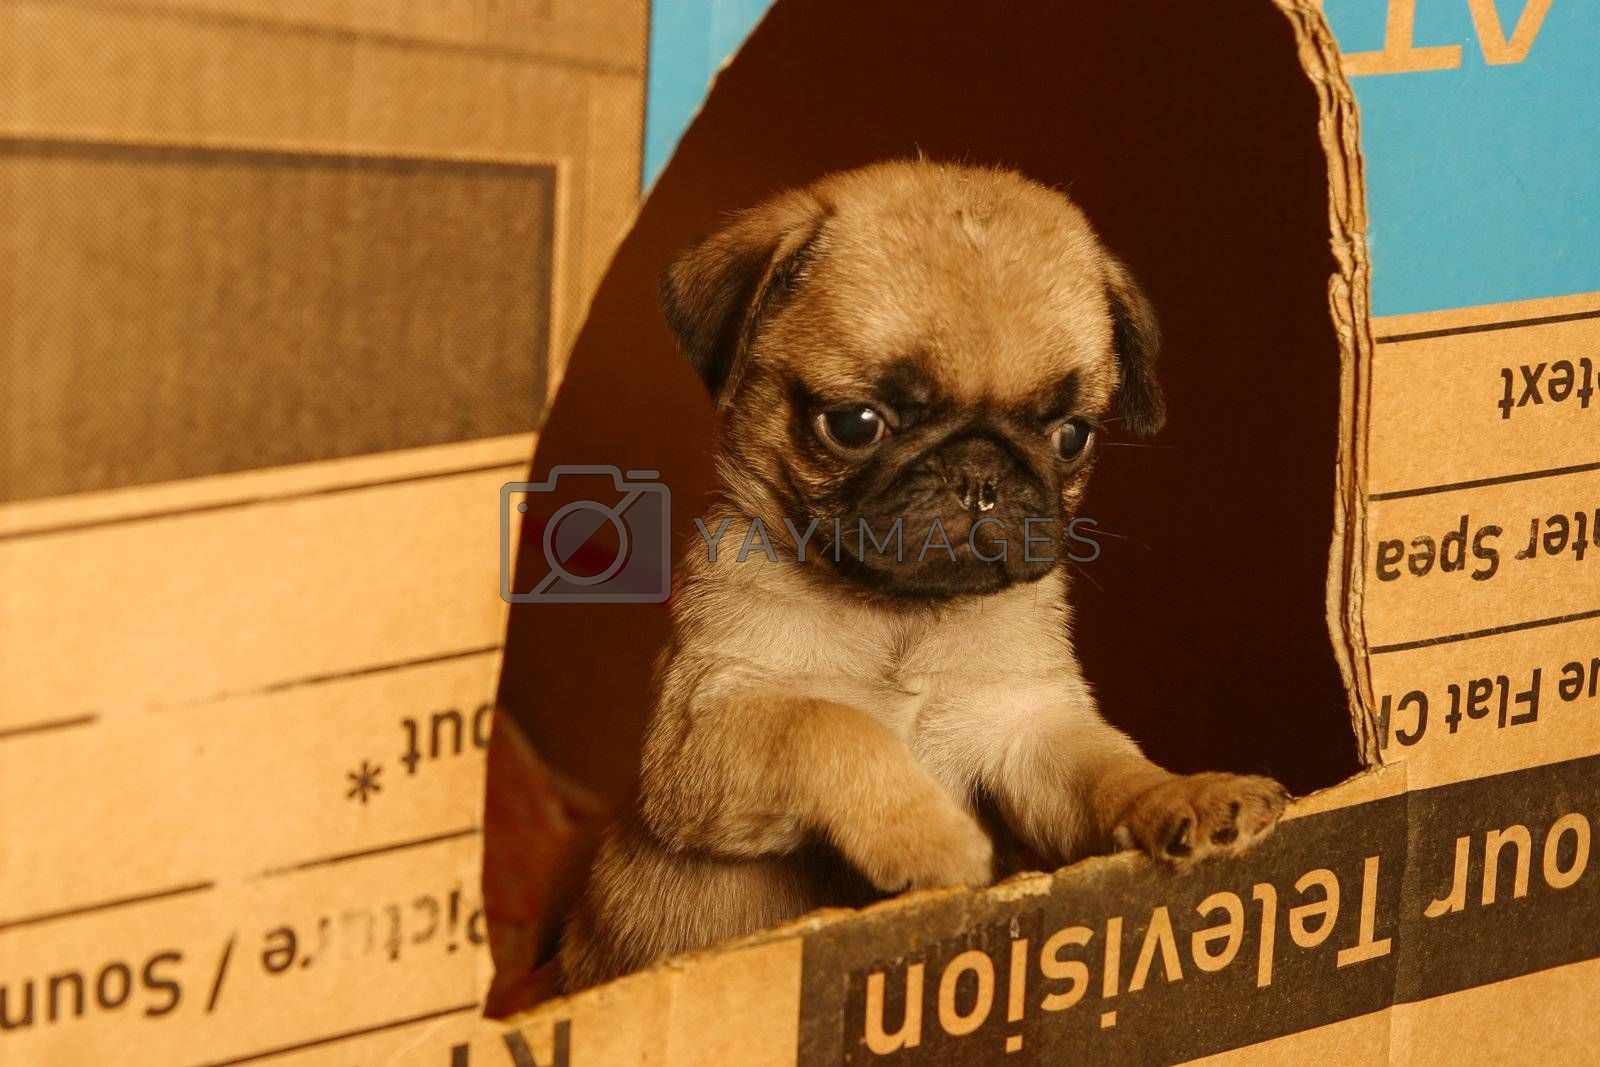 The small puppy of a pug looks out from a box